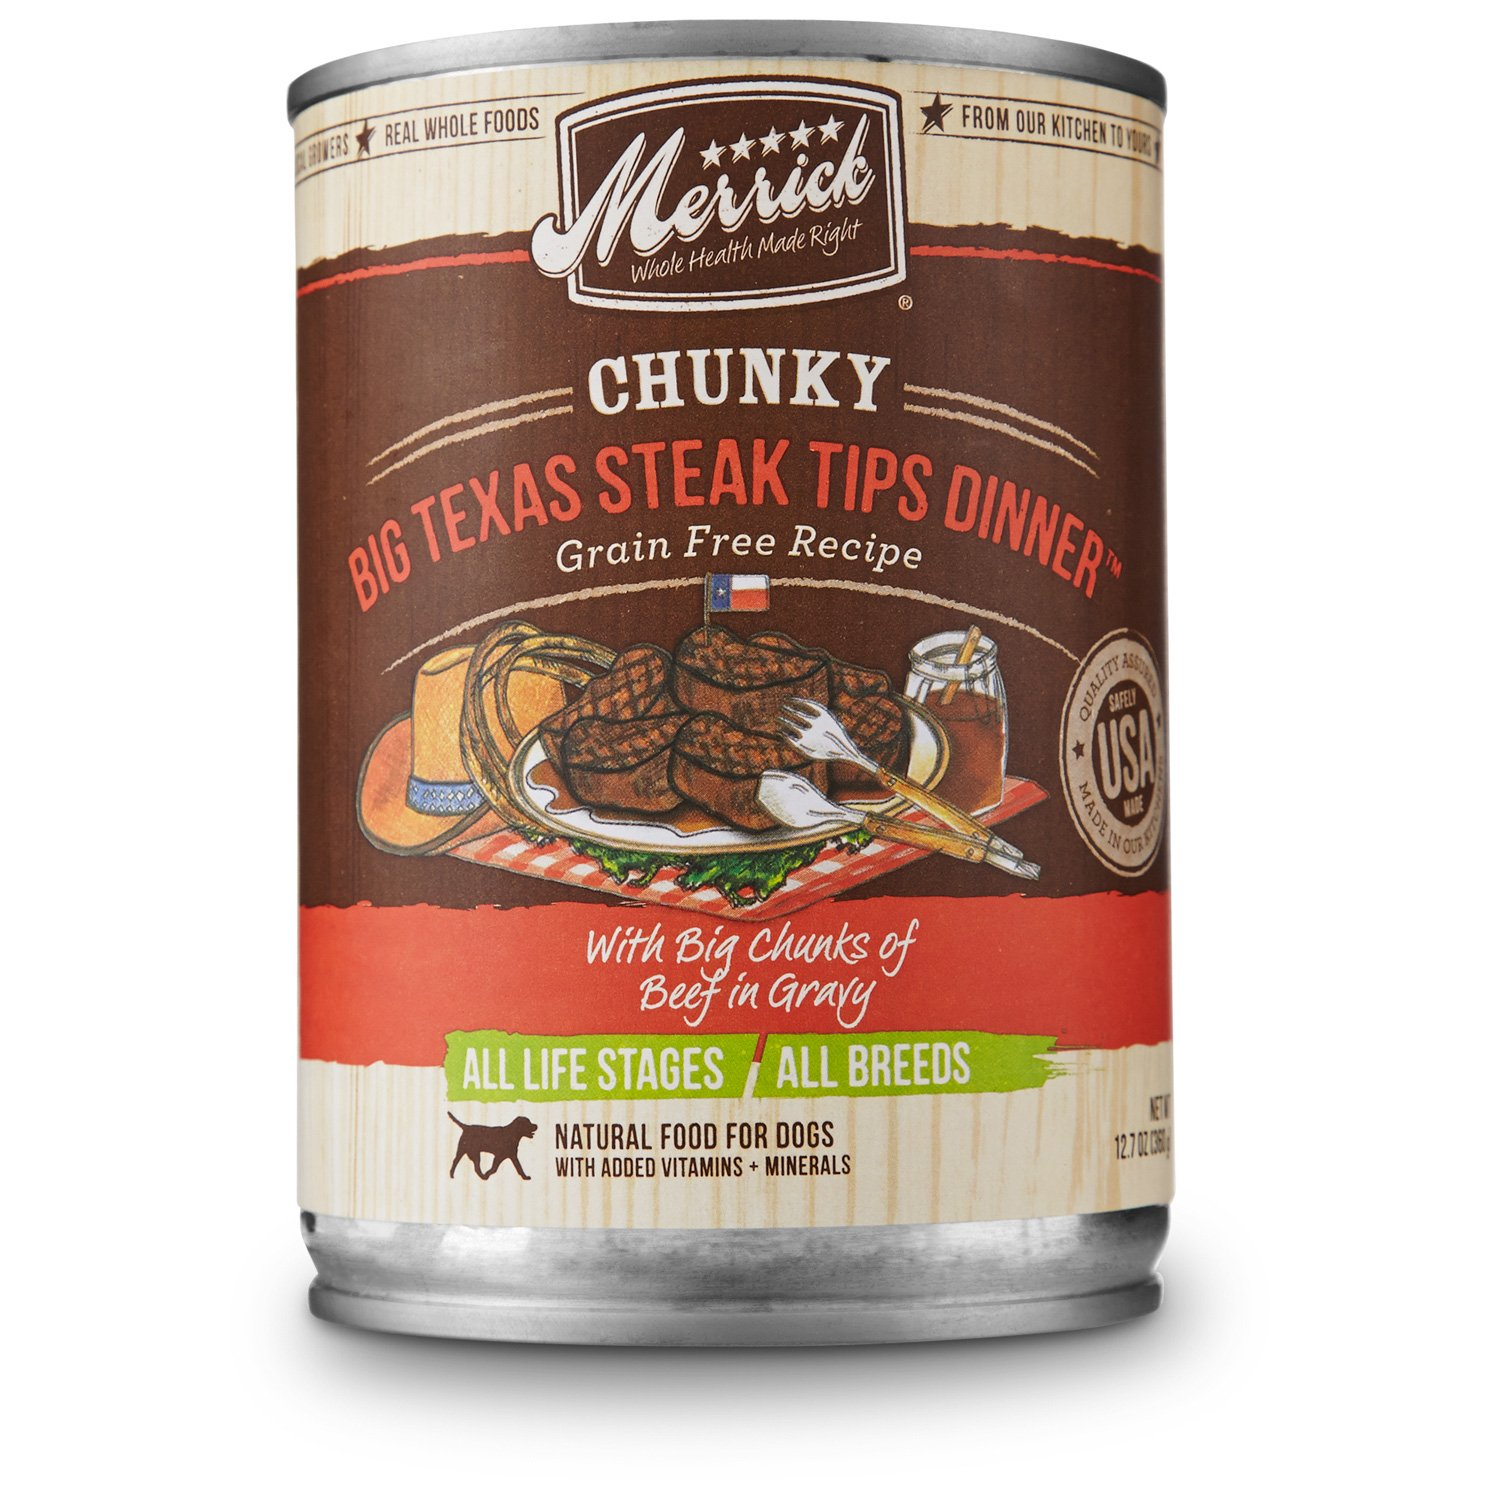 Merrick Chunky Big Texas Steak Tips Dinner Canned Dog Food